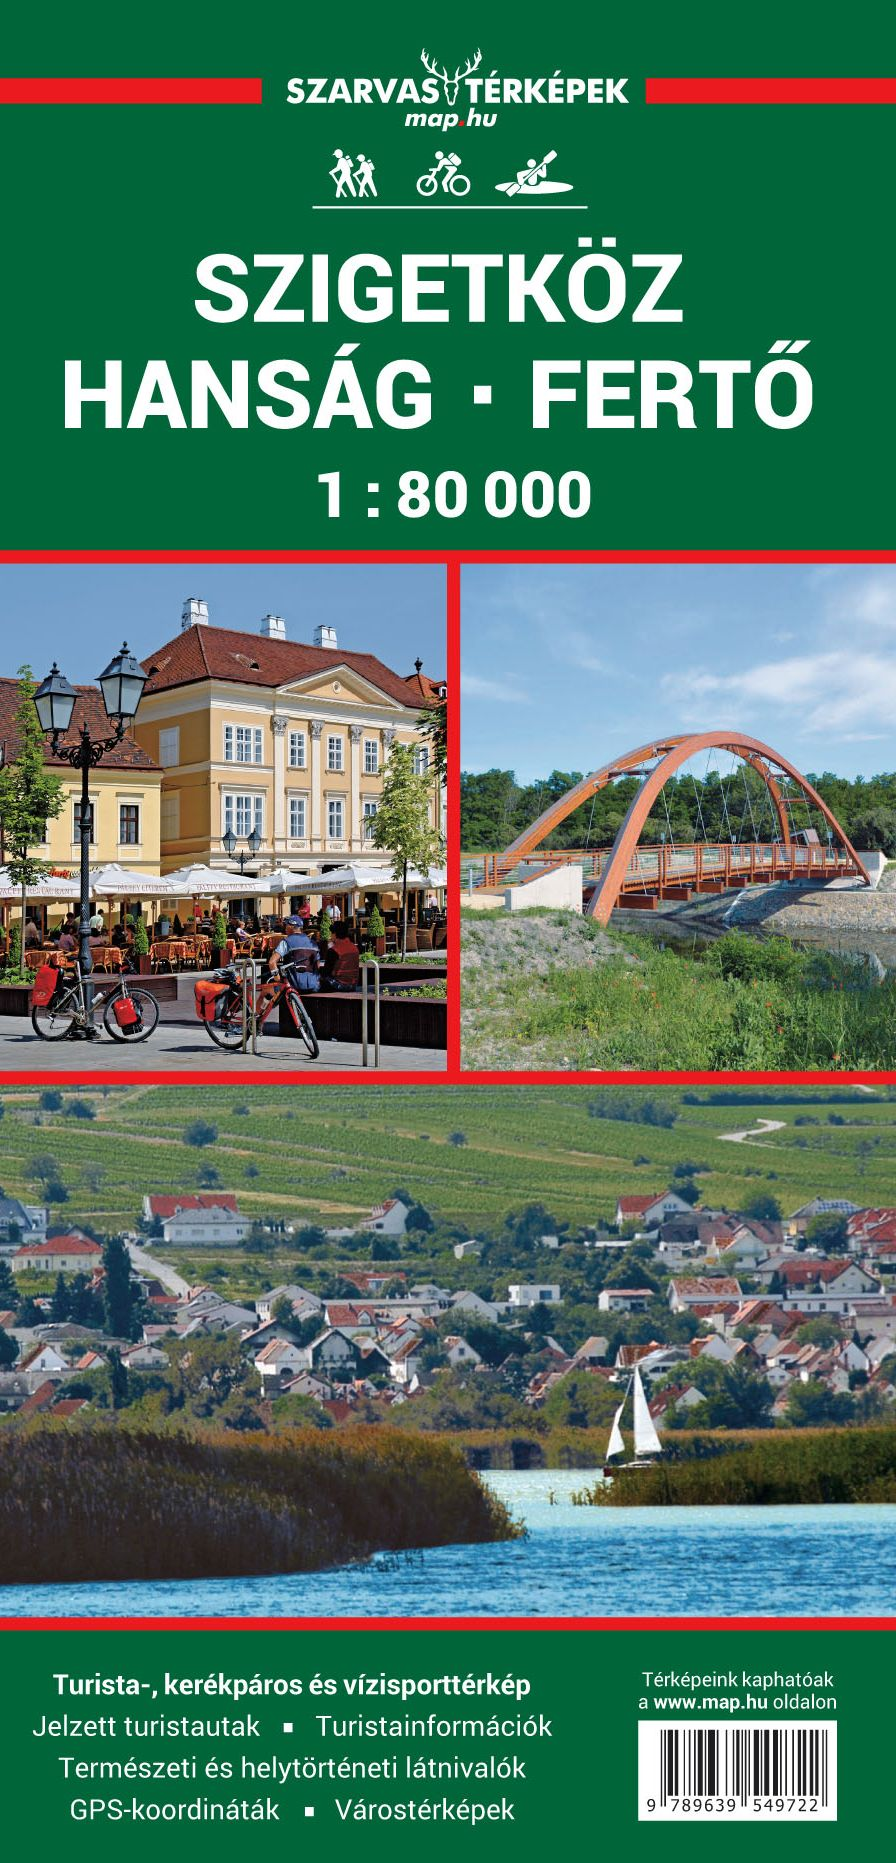 The best biking area in NW Hungary (incl. Austrian and Slovakian territories)